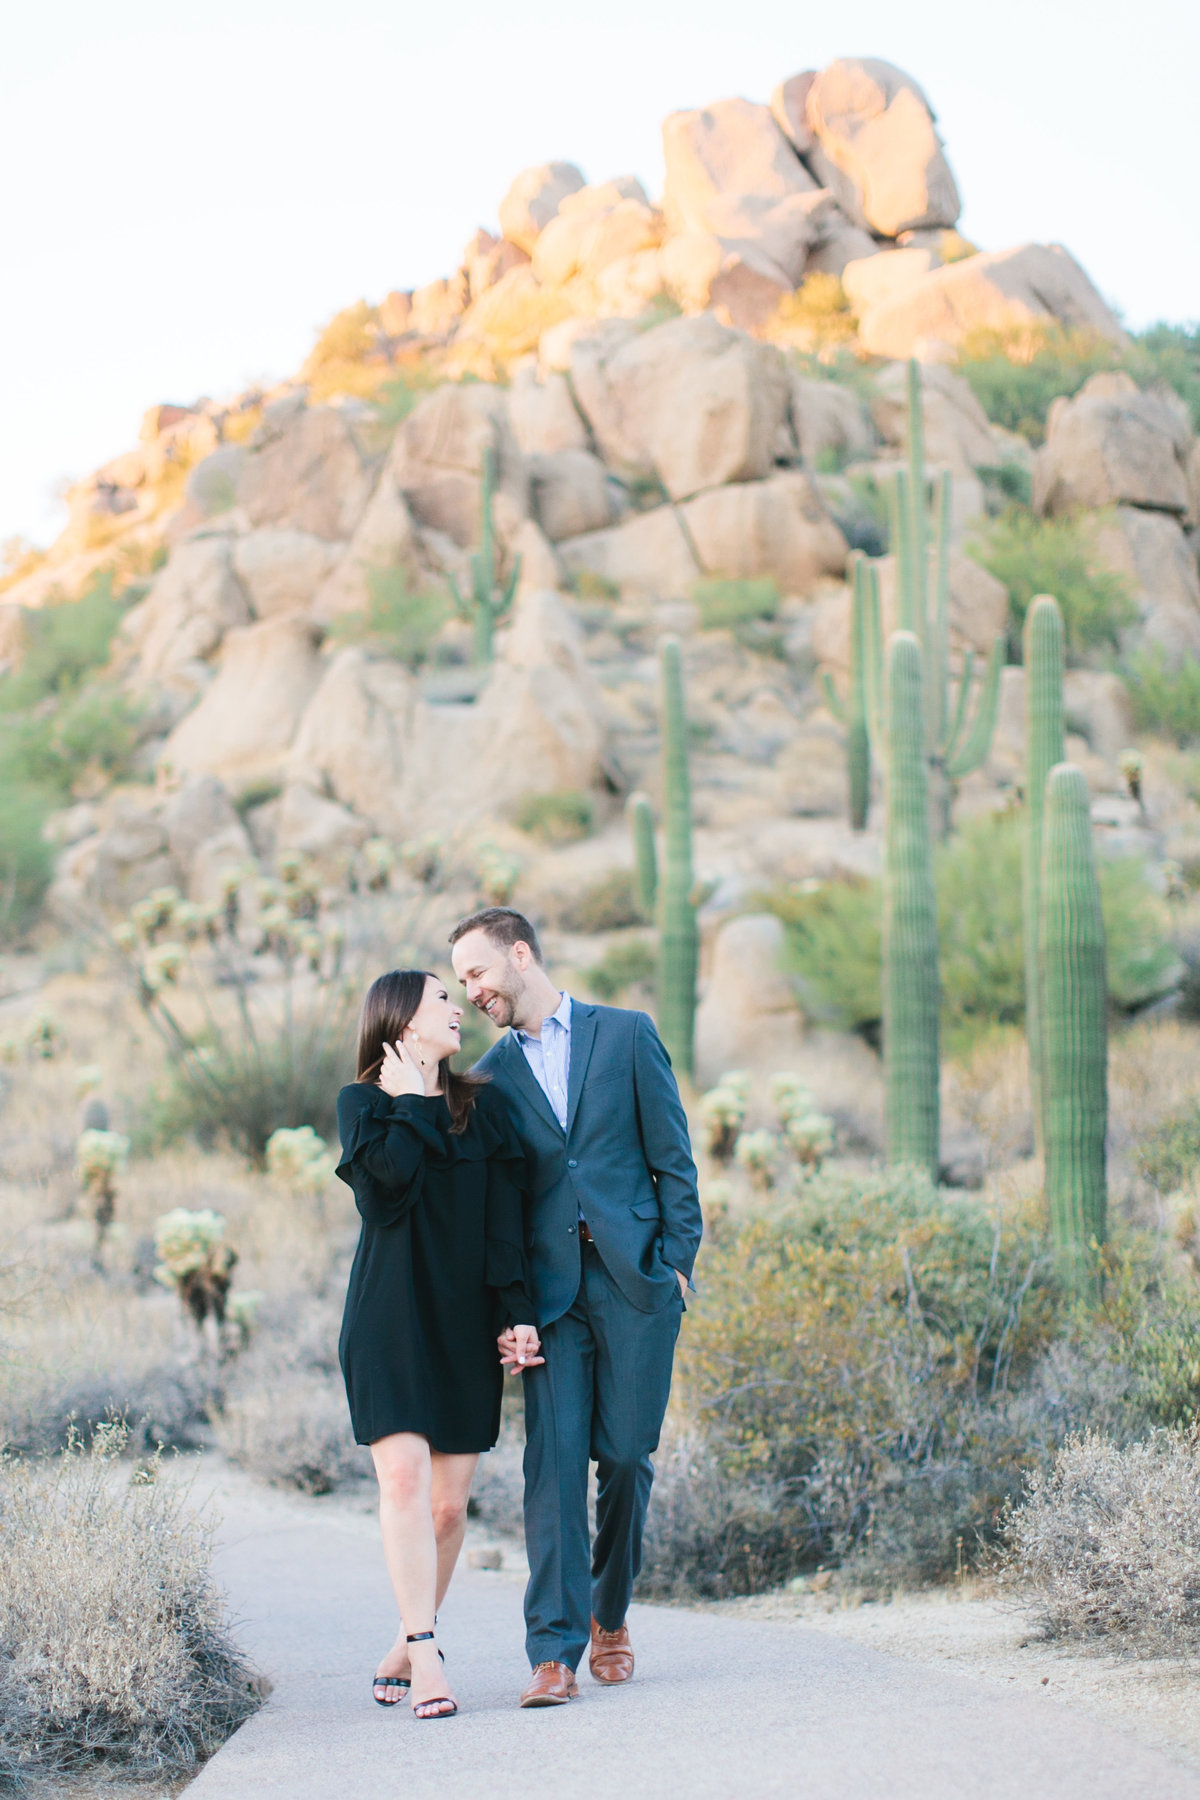 SellersEngagementWEBSITE-12